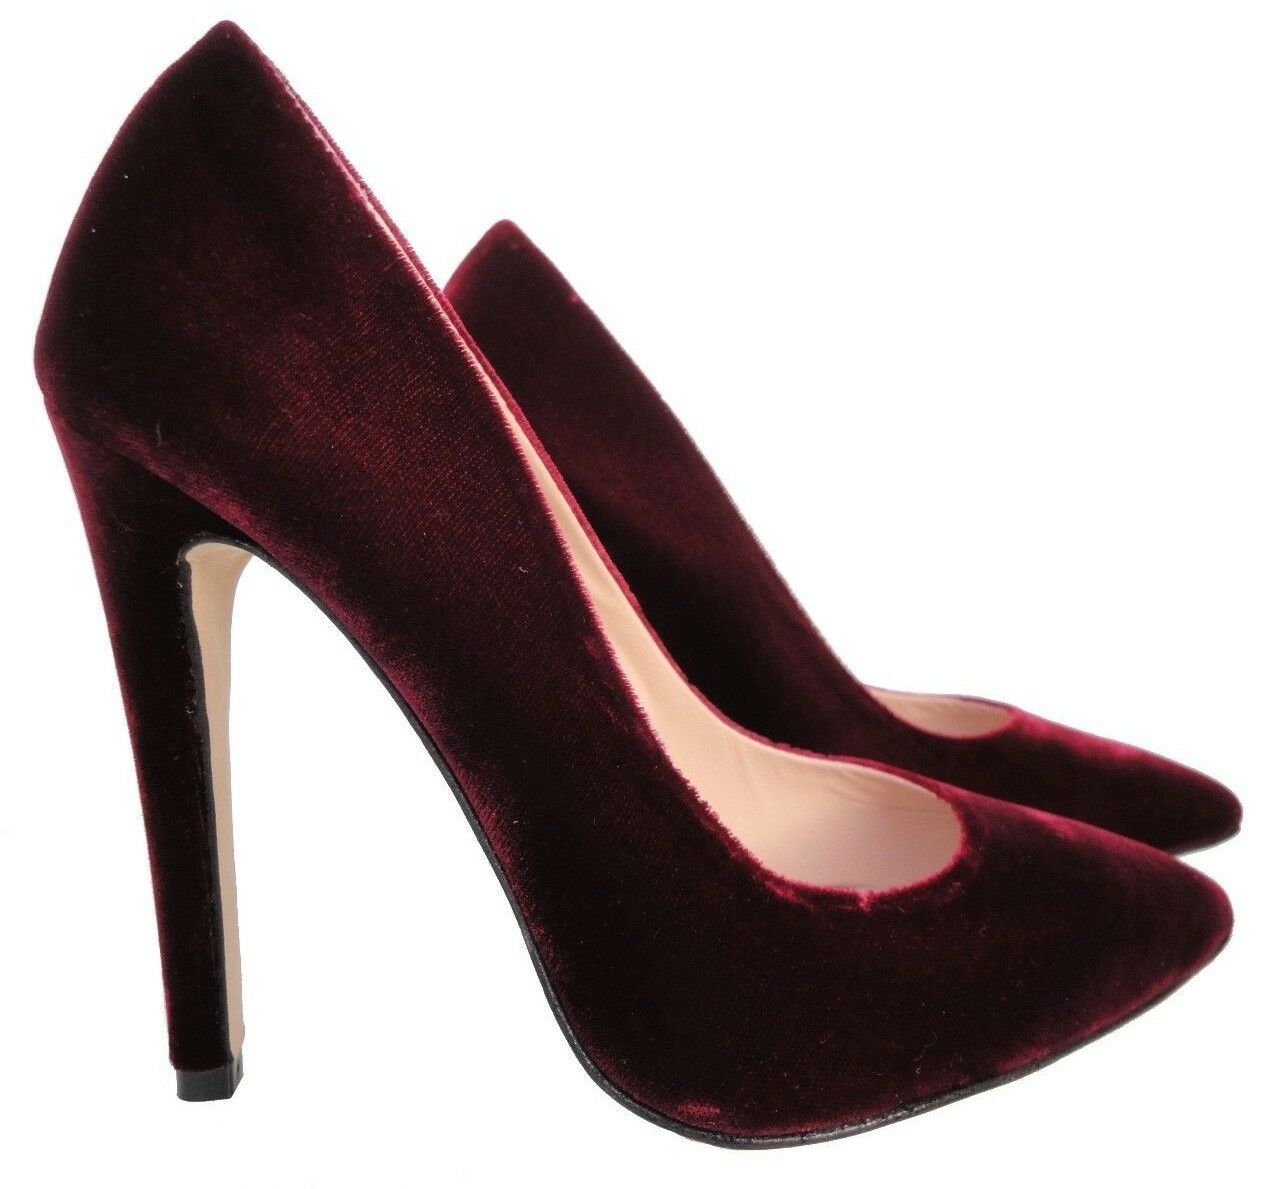 CQ PUMPS COUTURE ITALY HIGH HEELS POINTY PUMPS CQ zapatos ZAPATOS DE SALÓN VELVET rojo 08b640